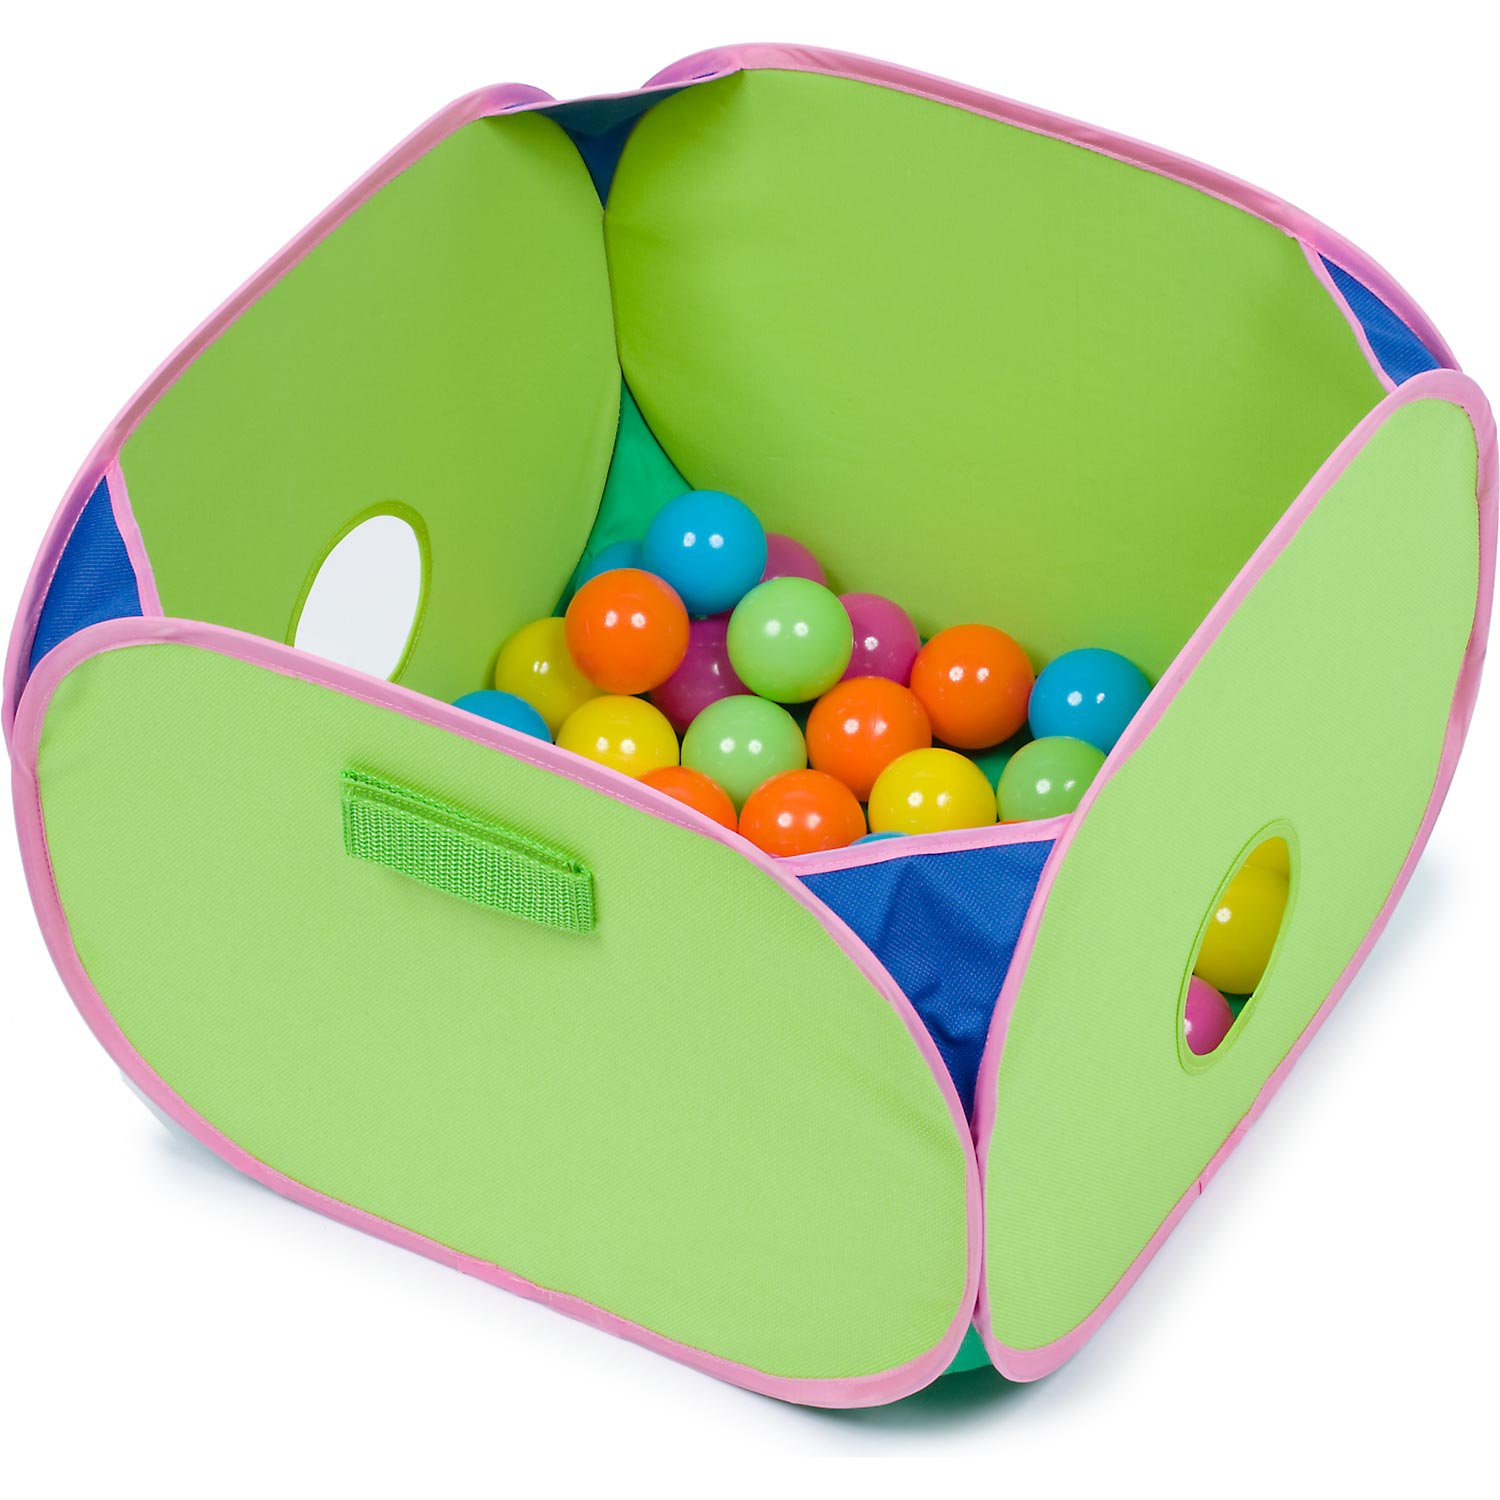 Toys With Balls And Tubes : Marshall pet products pop n play ferret ball pit toy petco